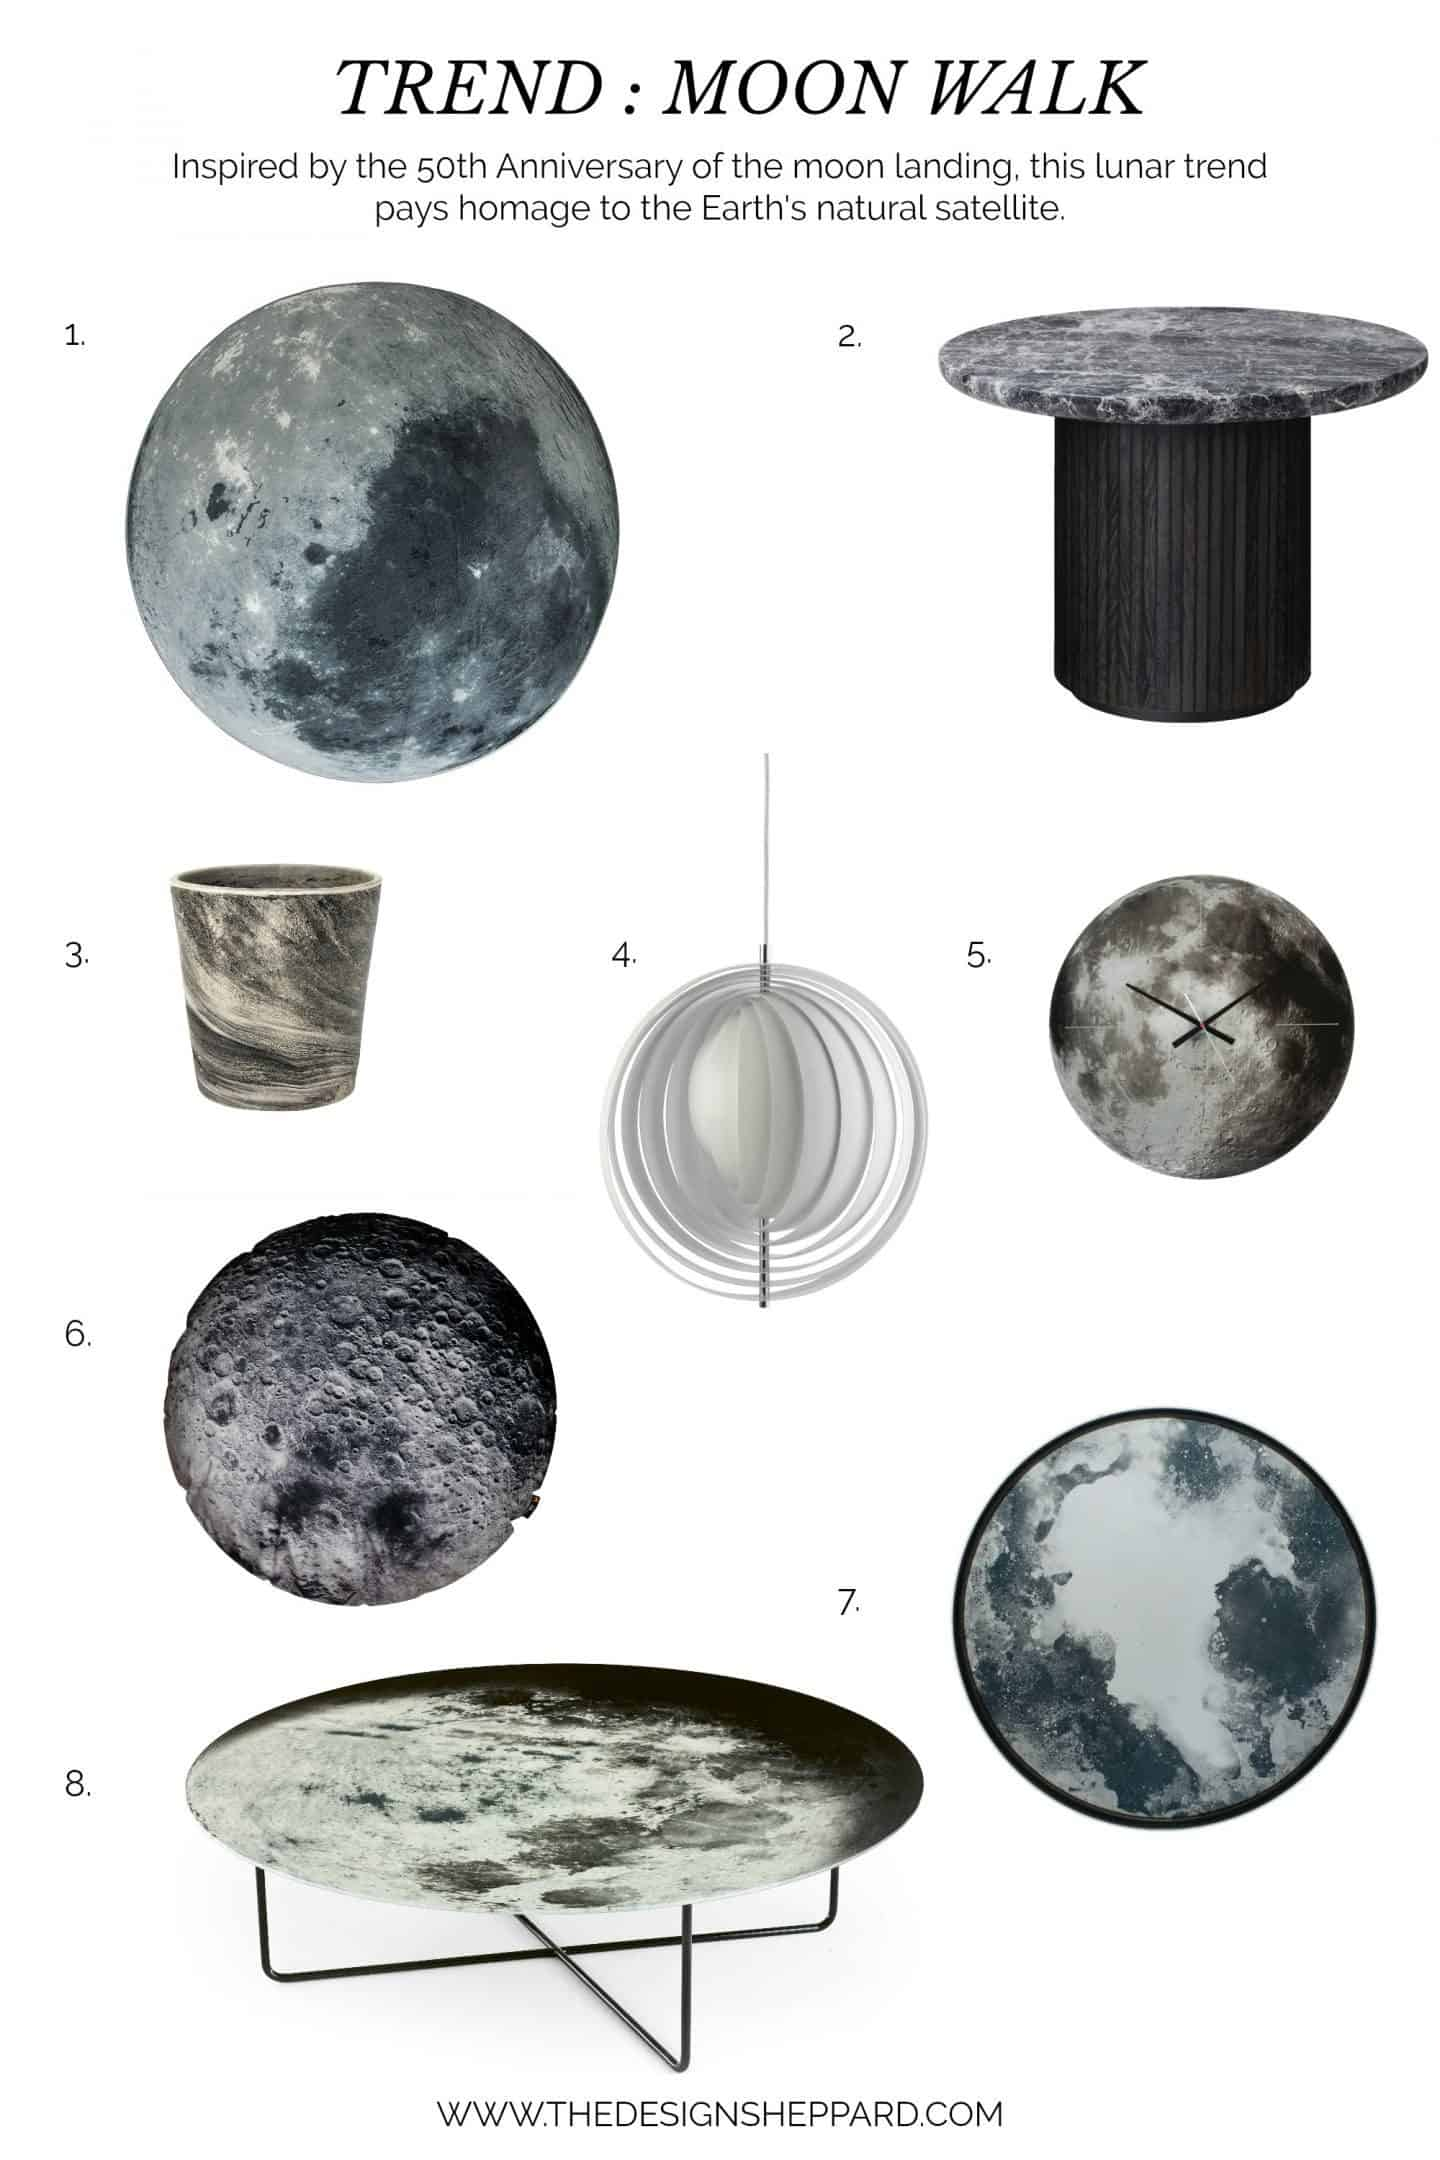 A selection of homeware products to achieve the moon trend in interior design